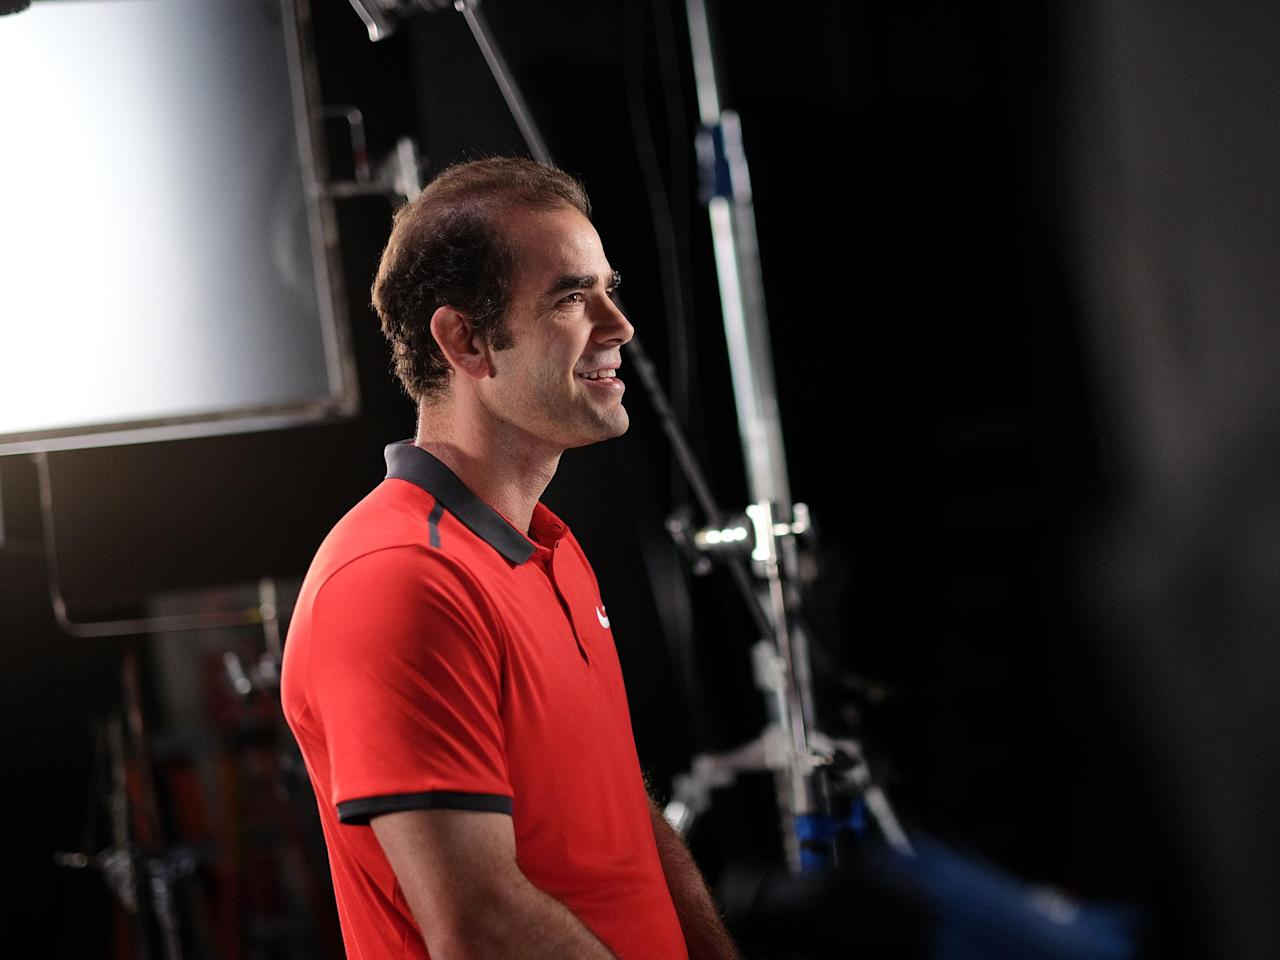 Pete Sampras on Andy Murray, Rafa Nadal challenging Roger Federer's record and the new kids on the block